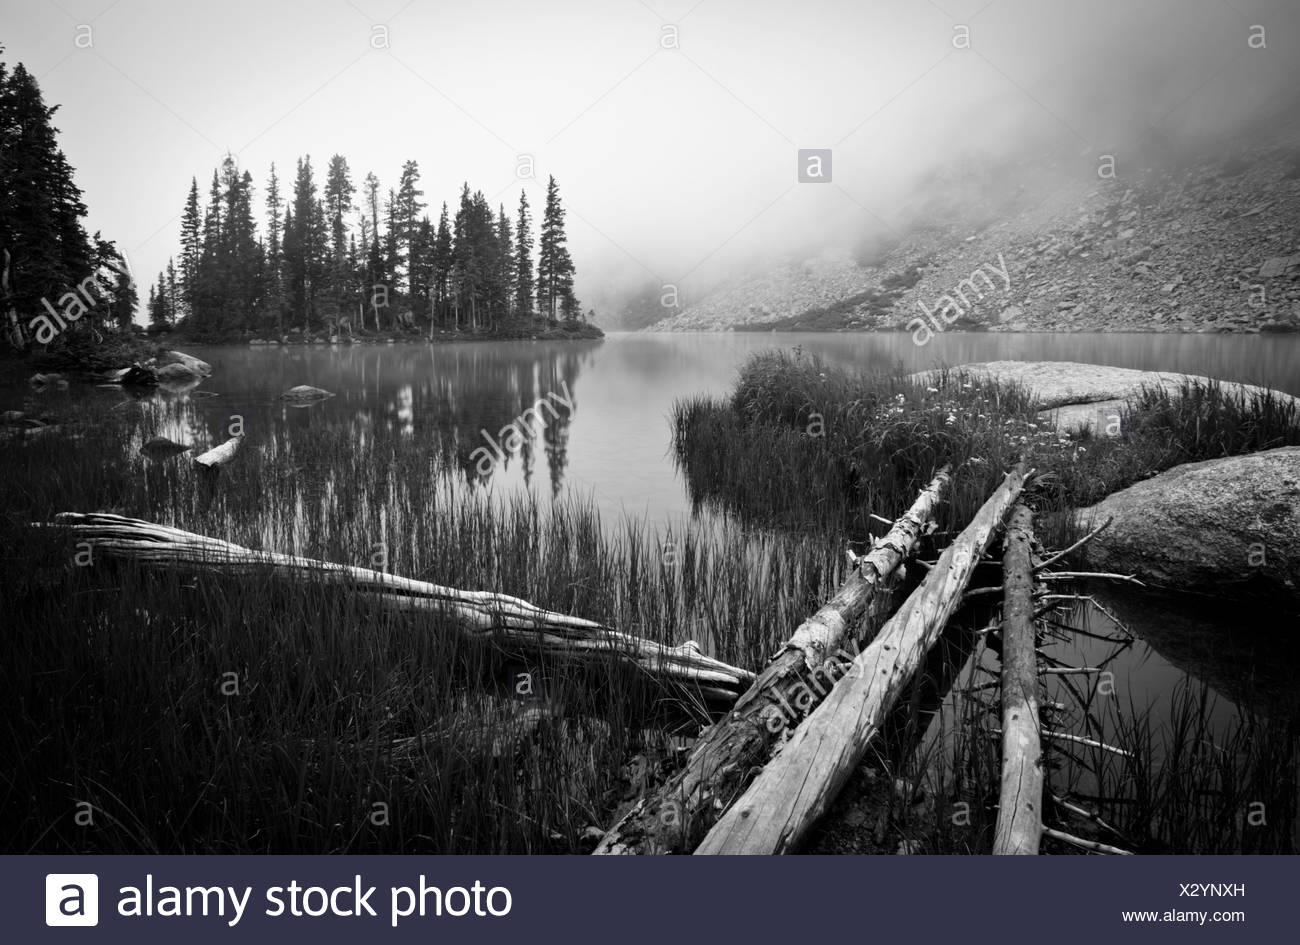 Logs leading to lake in fog. Westcliffe, Colorado, United States. - Stock Image